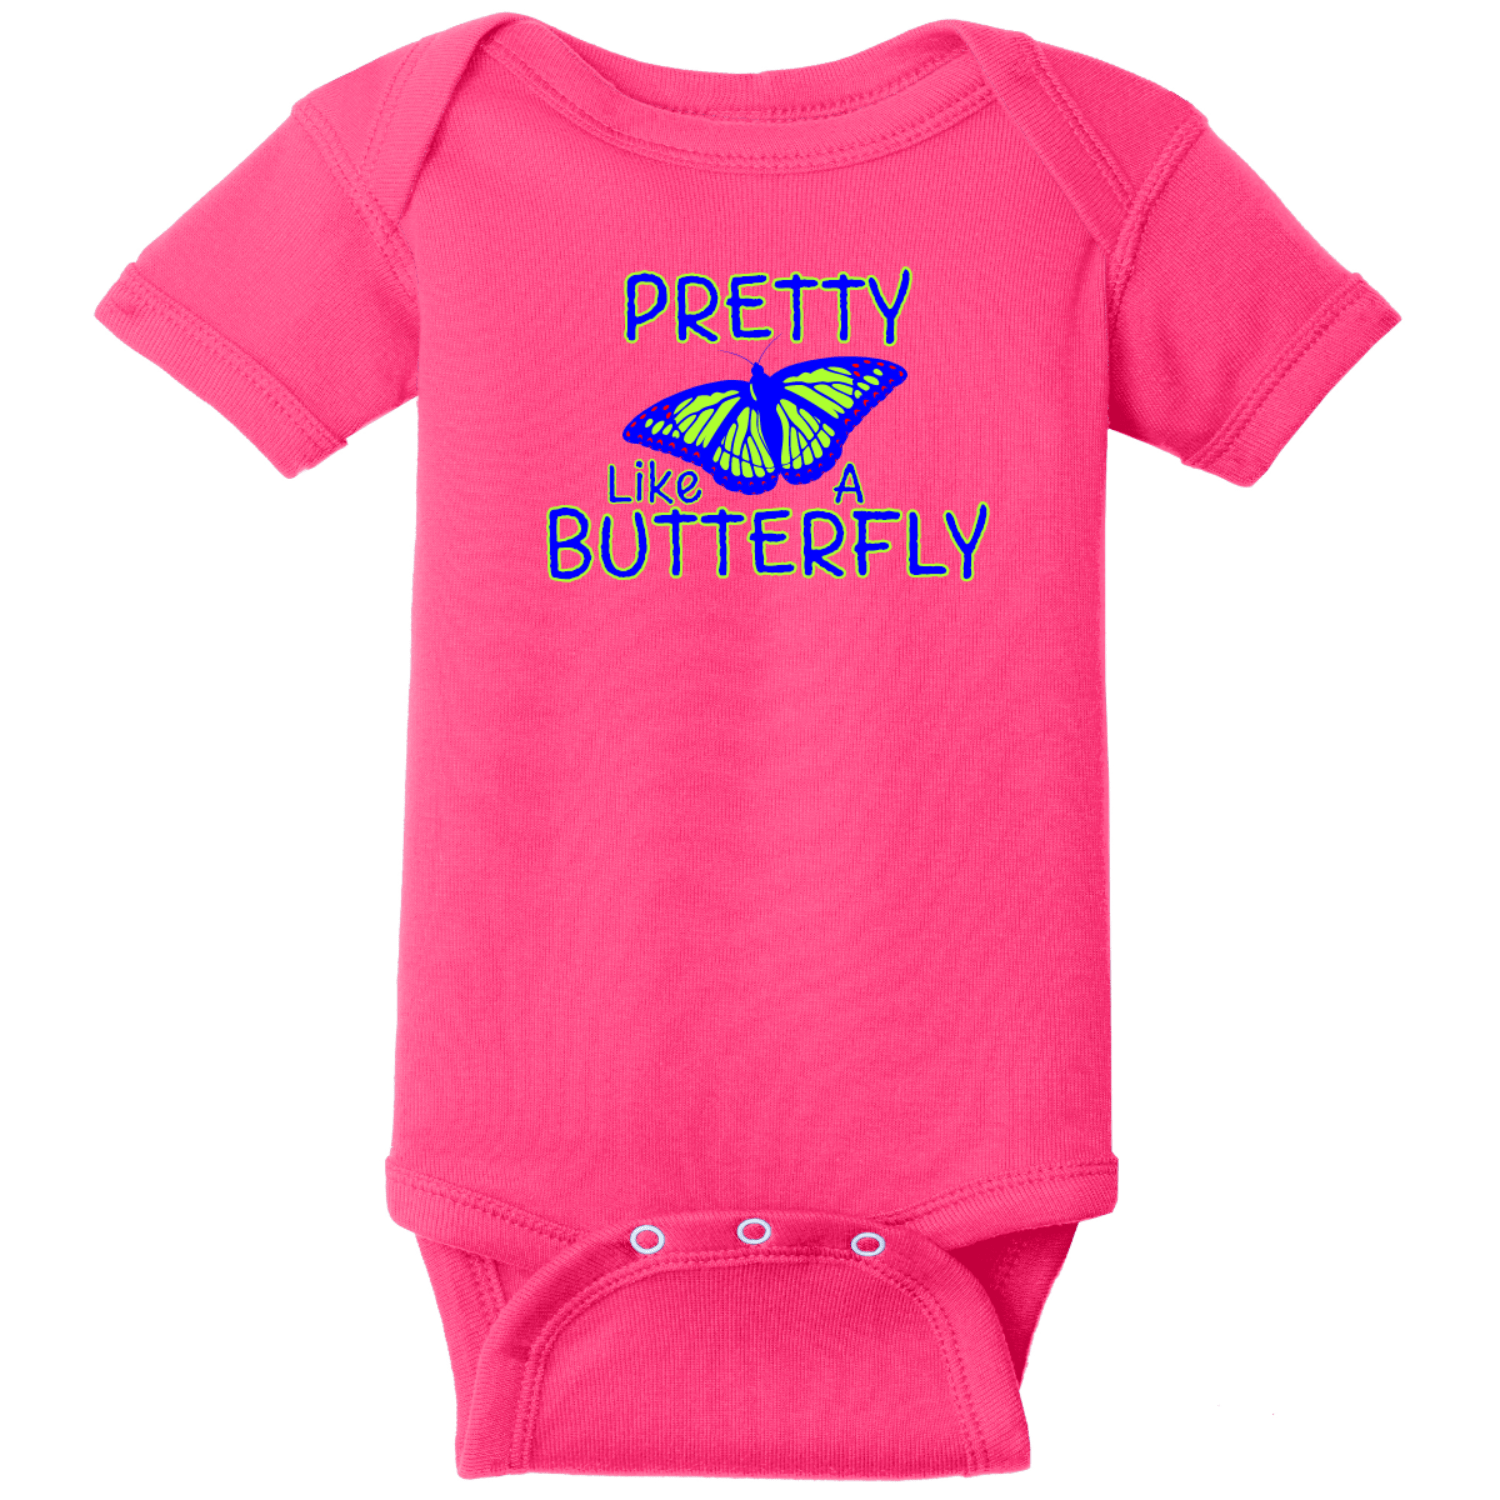 Pretty Like A Butterfly Baby Bodysuit Raspberry Rabbit Skins Infant Short Sleeve Infant Rib Bodysuit RS4400